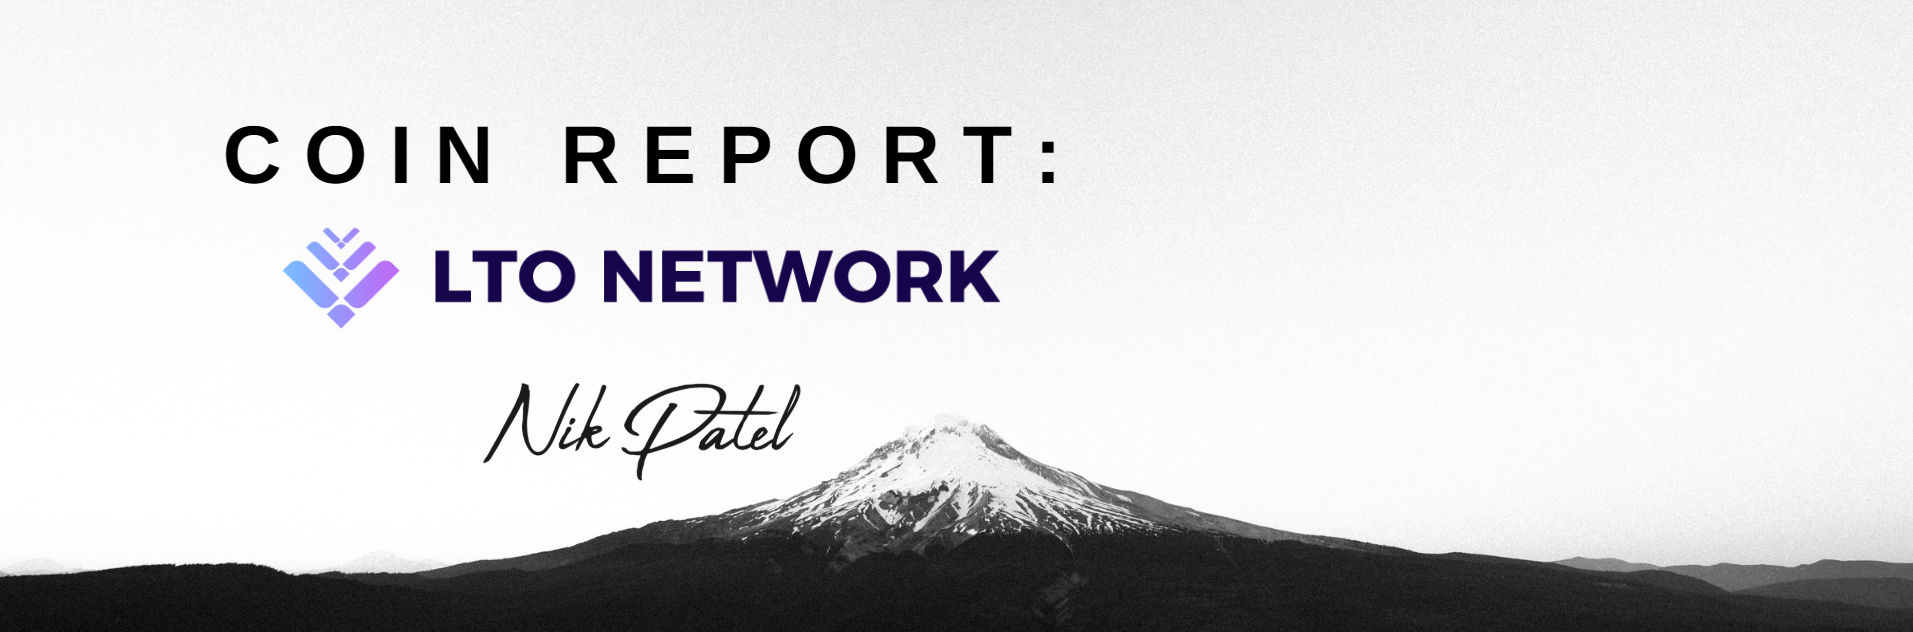 Coin Report #33: LTO Network